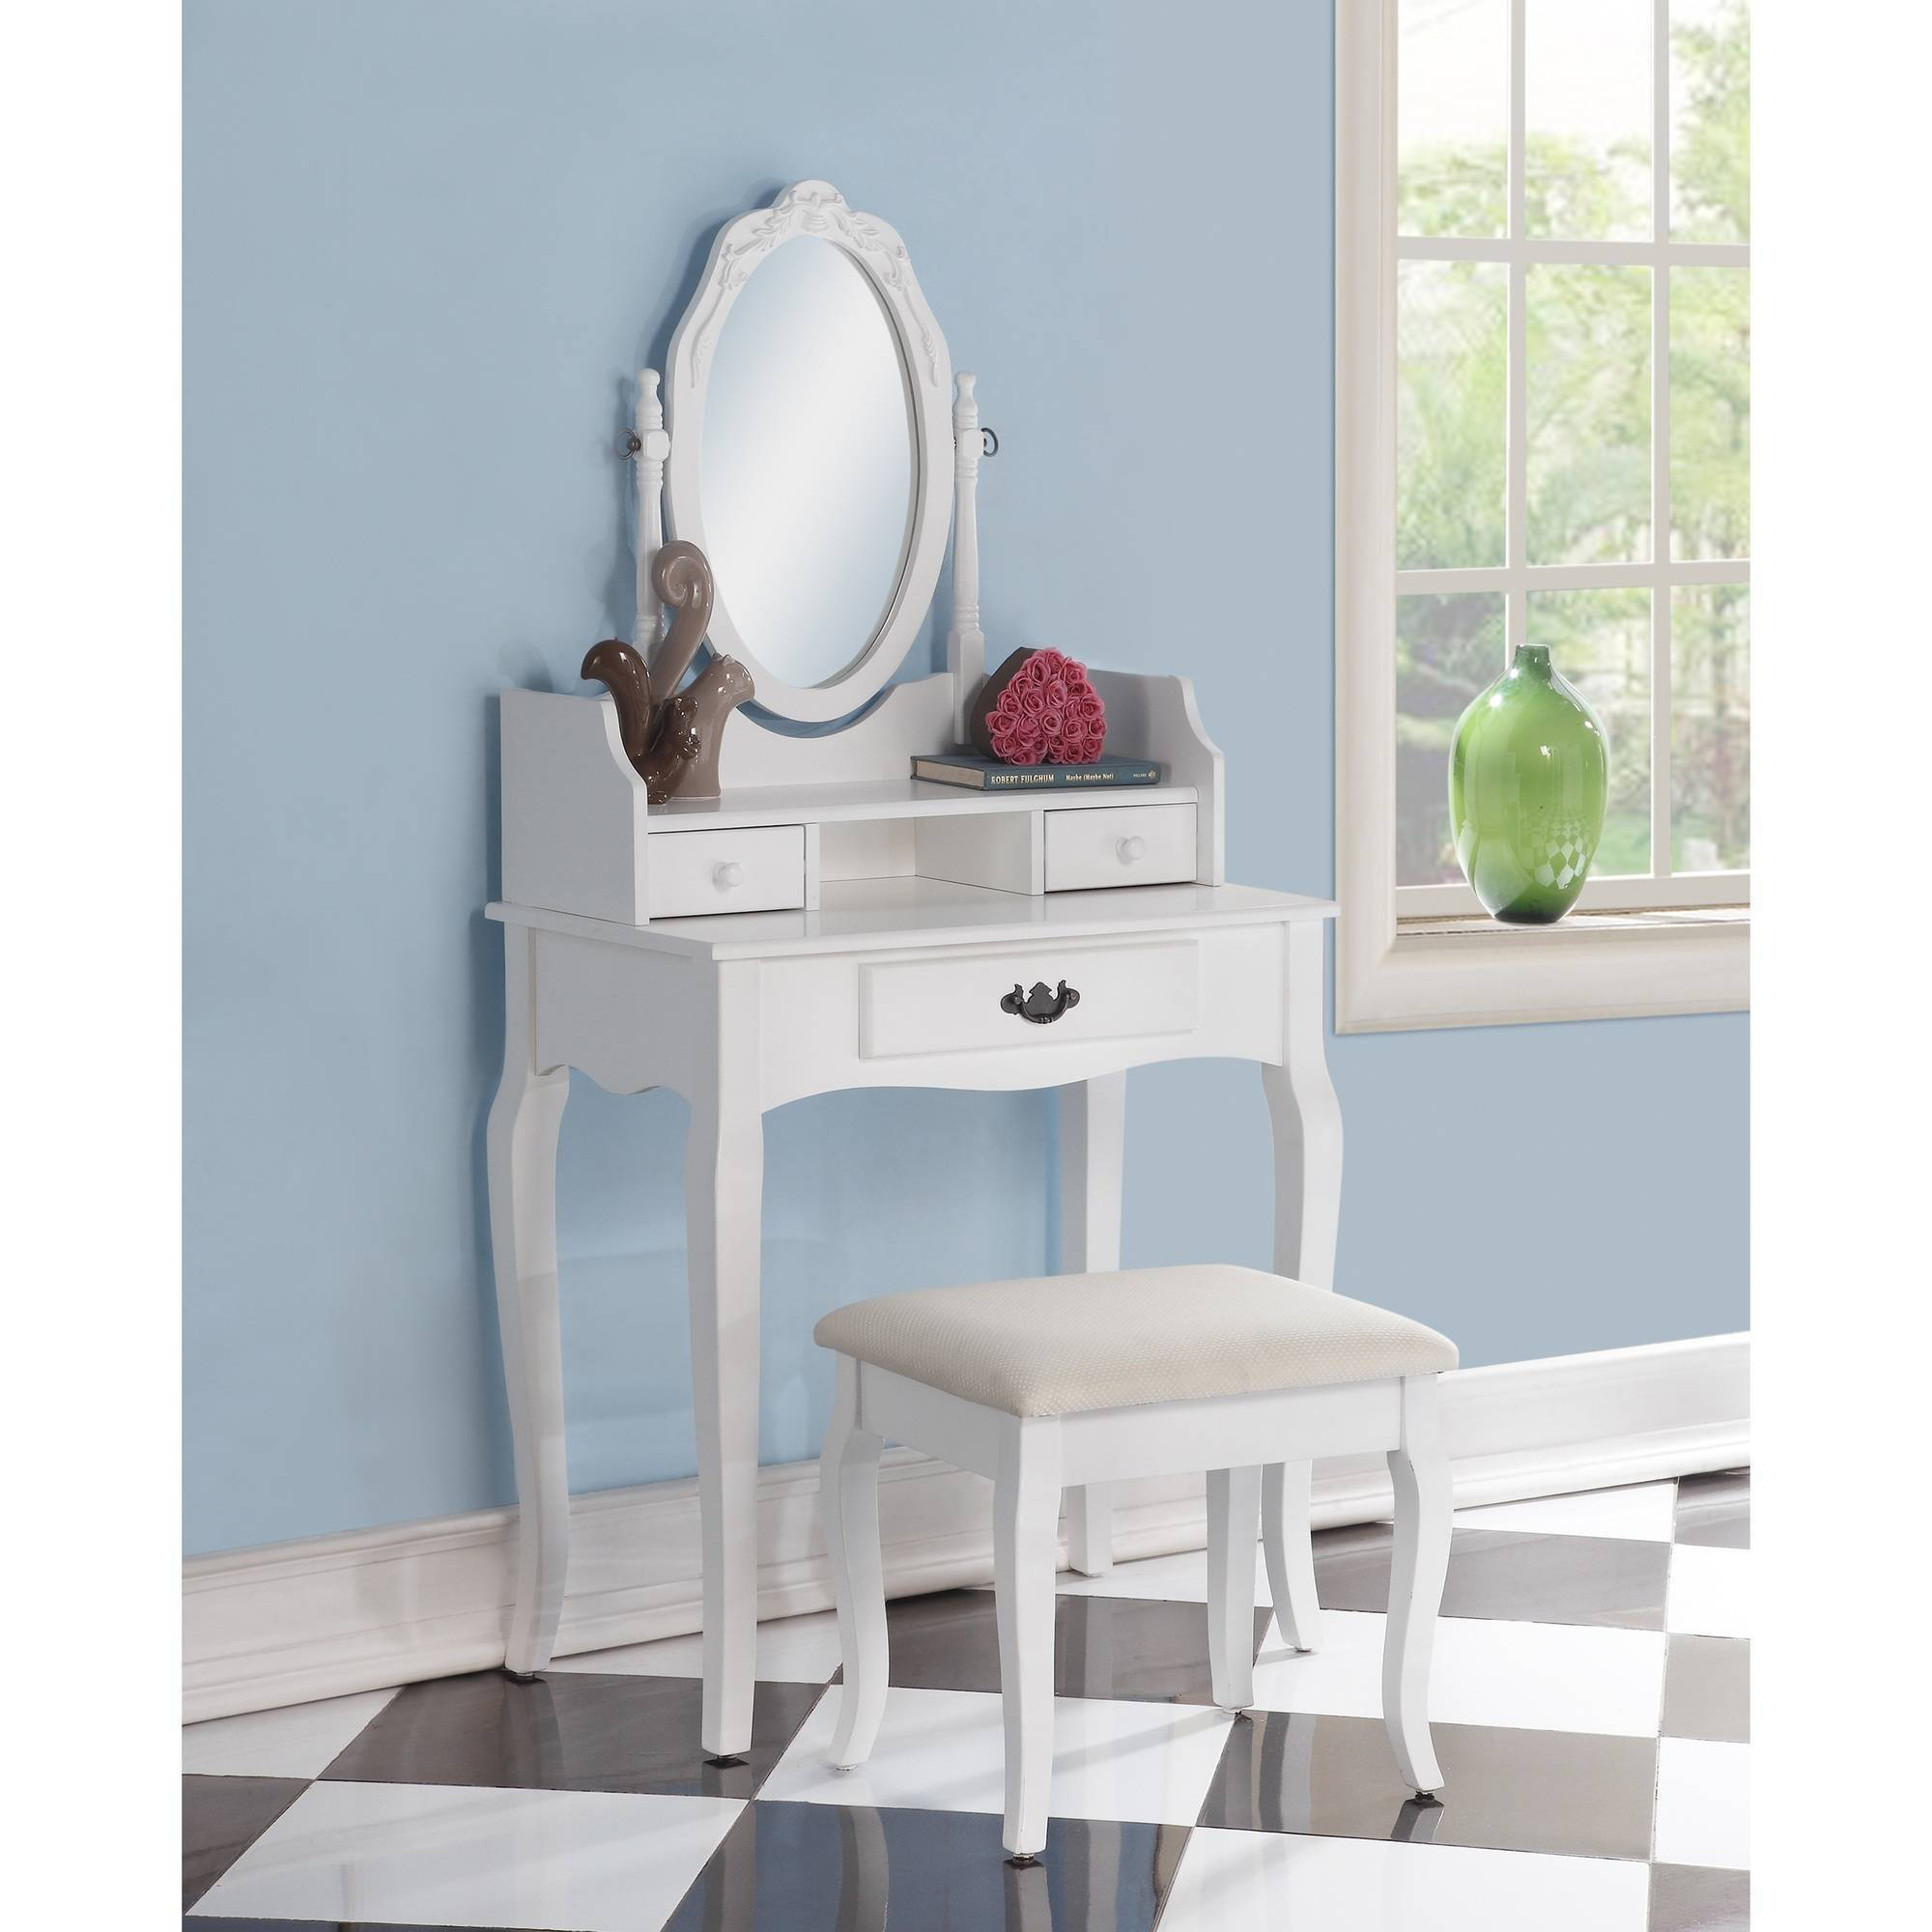 Elegant Roundhill Ribbon Wood Make Up Vanity Table And Stool Set, Multiple Colors  Available